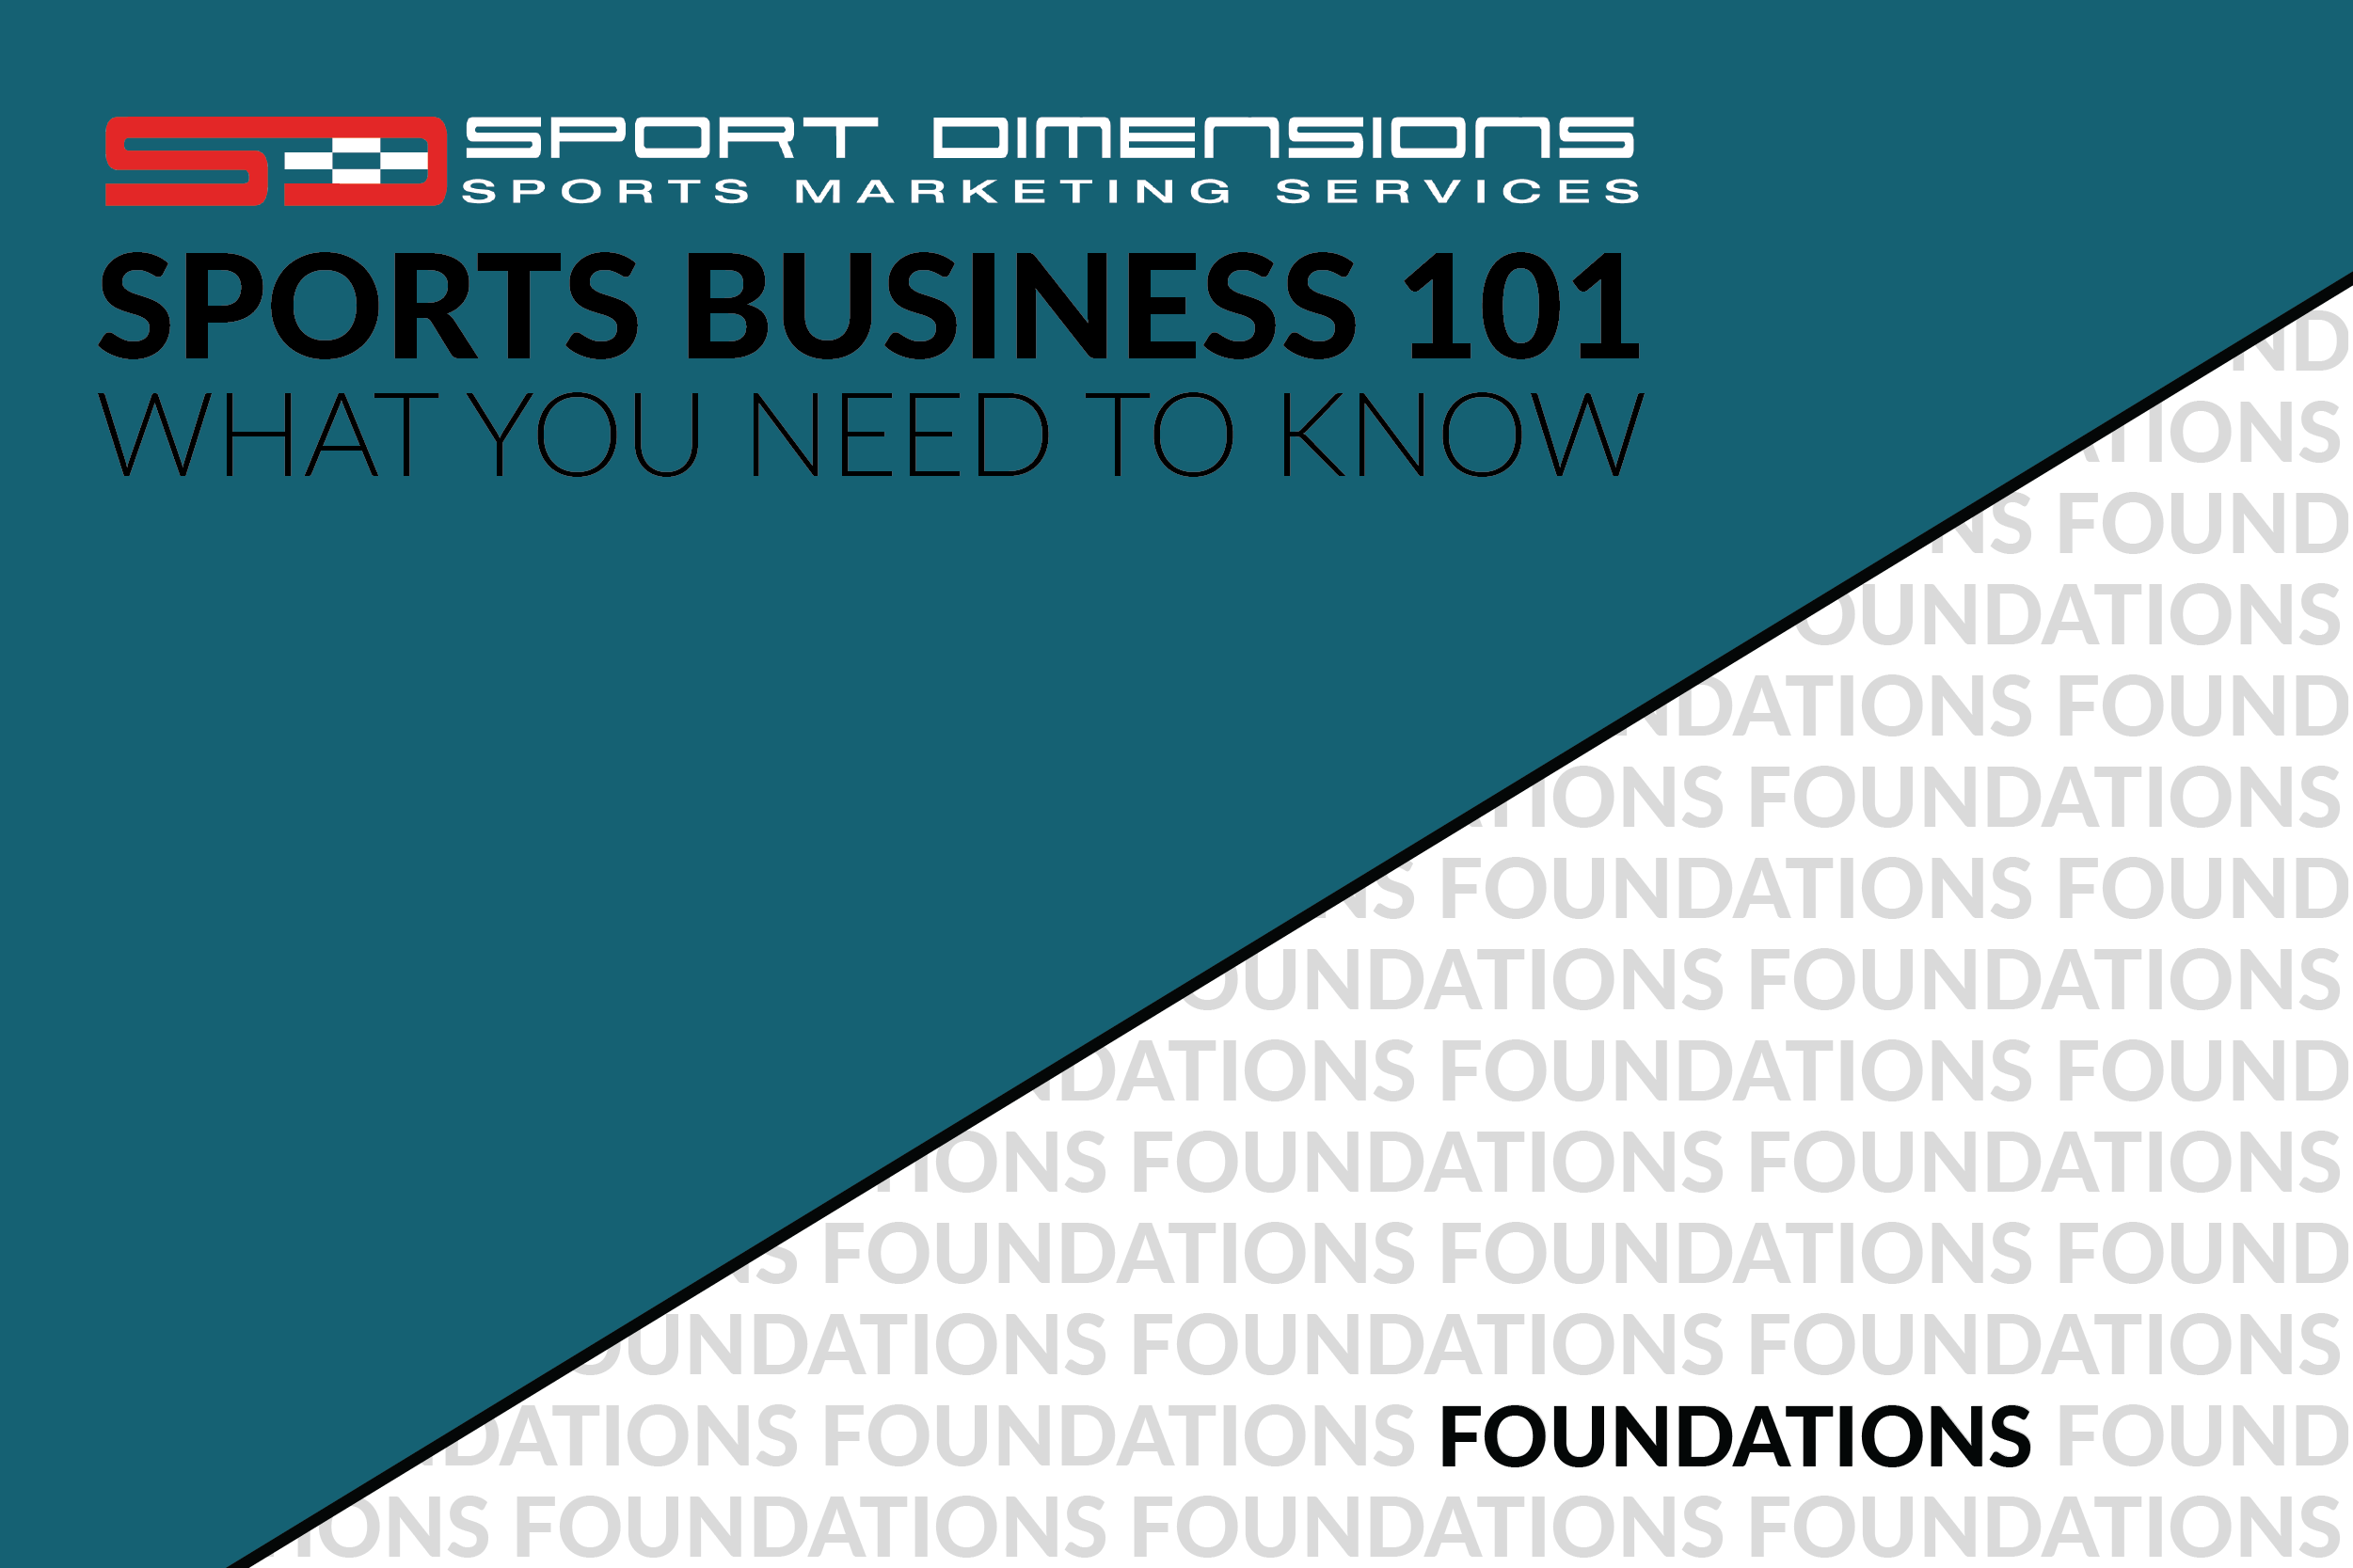 sport-dimensions_sports-business-101